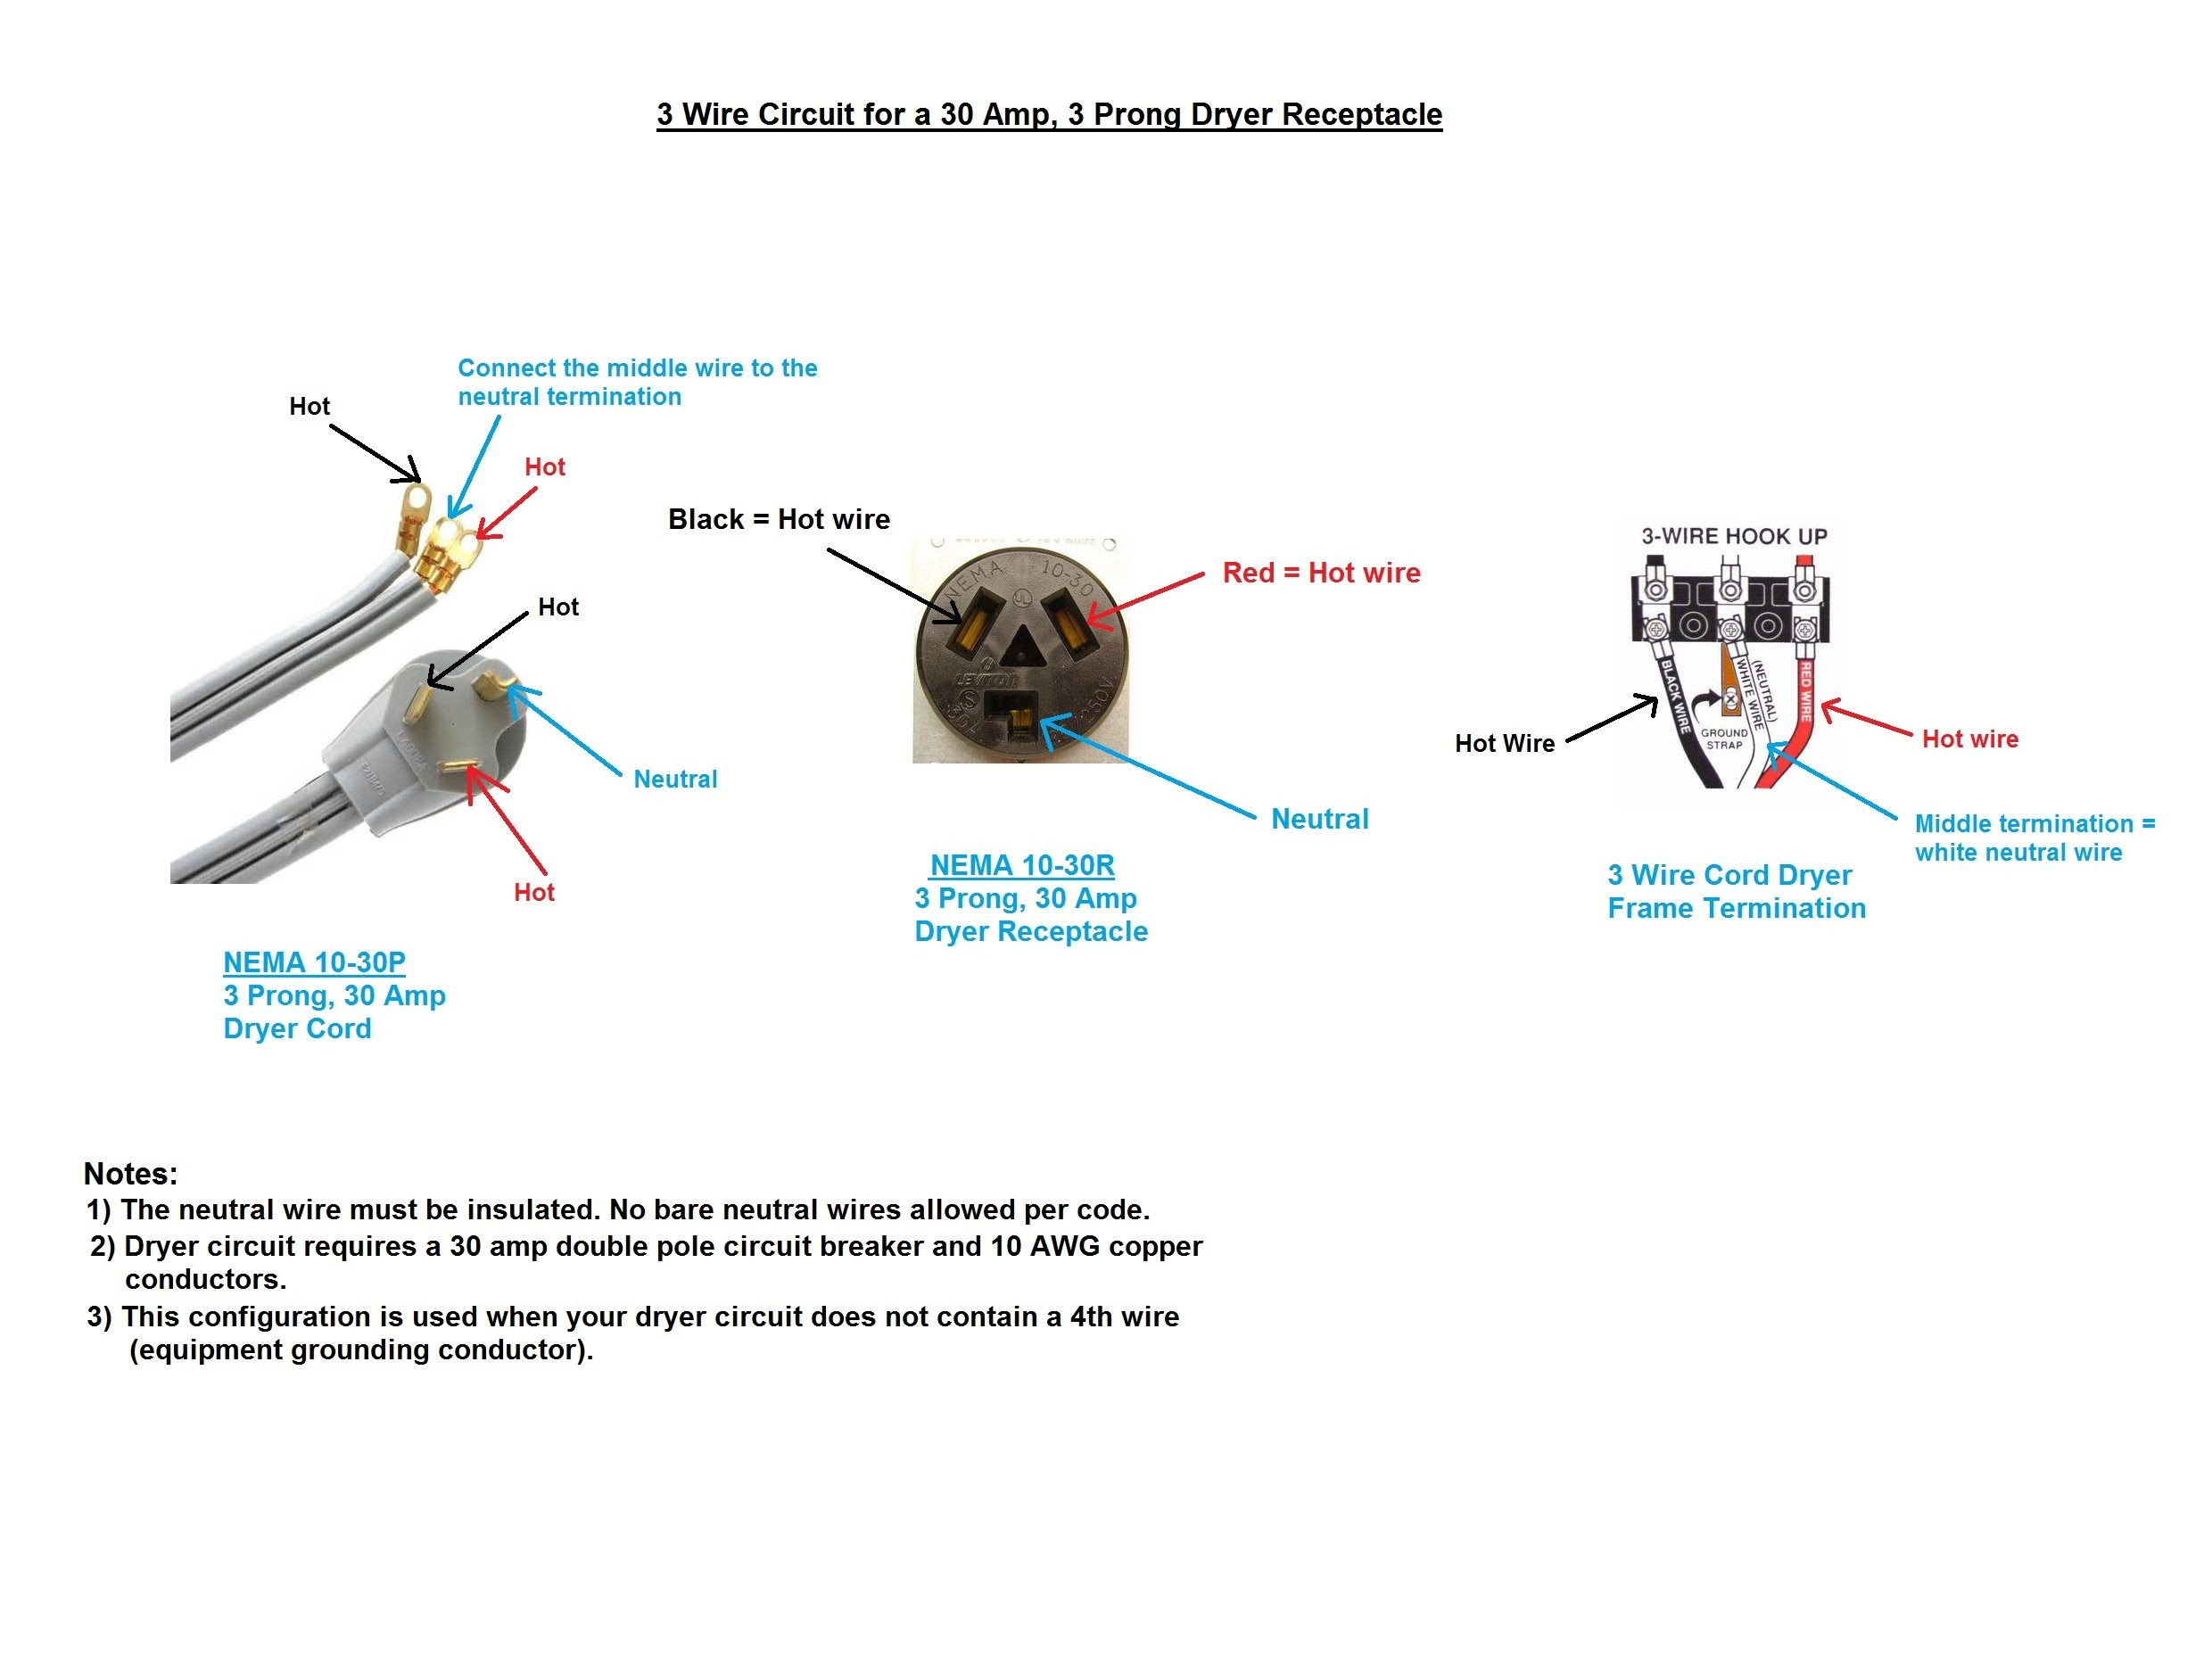 Download 4 Wire Dryer Cord Diagram Full Hd Ncmarketready Kinggo Fr